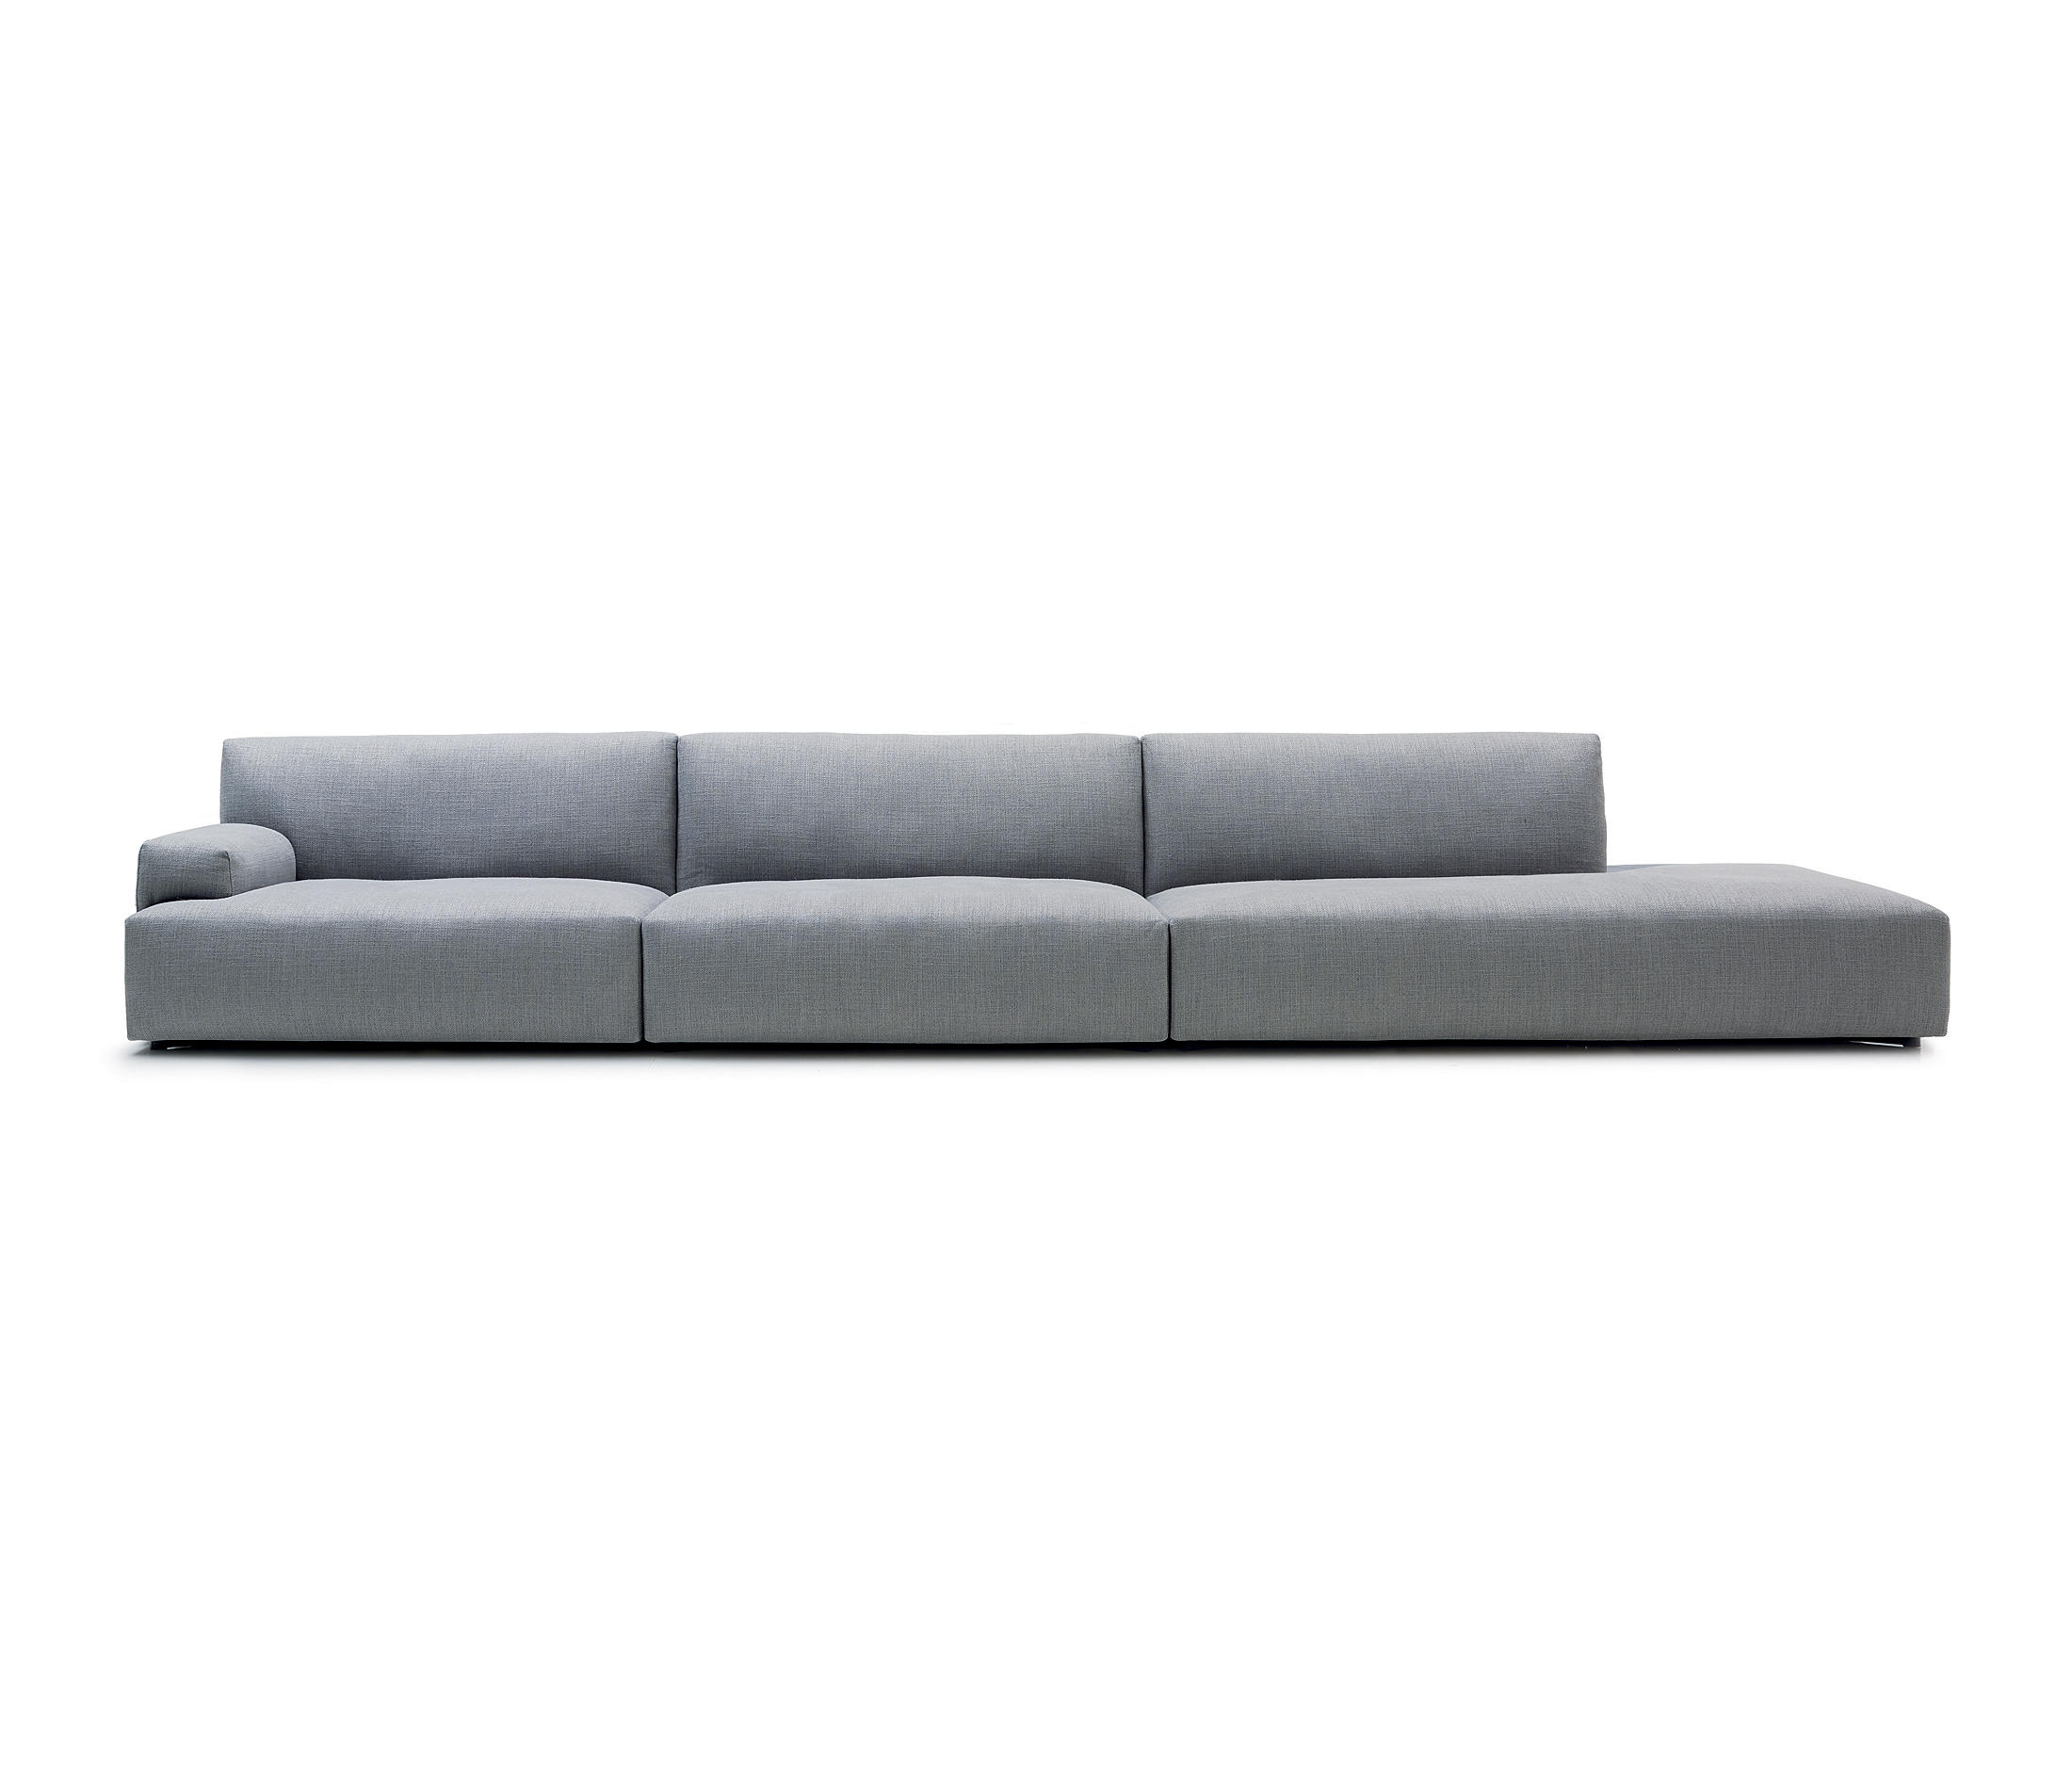 Bon Soho Sofa By Poliform